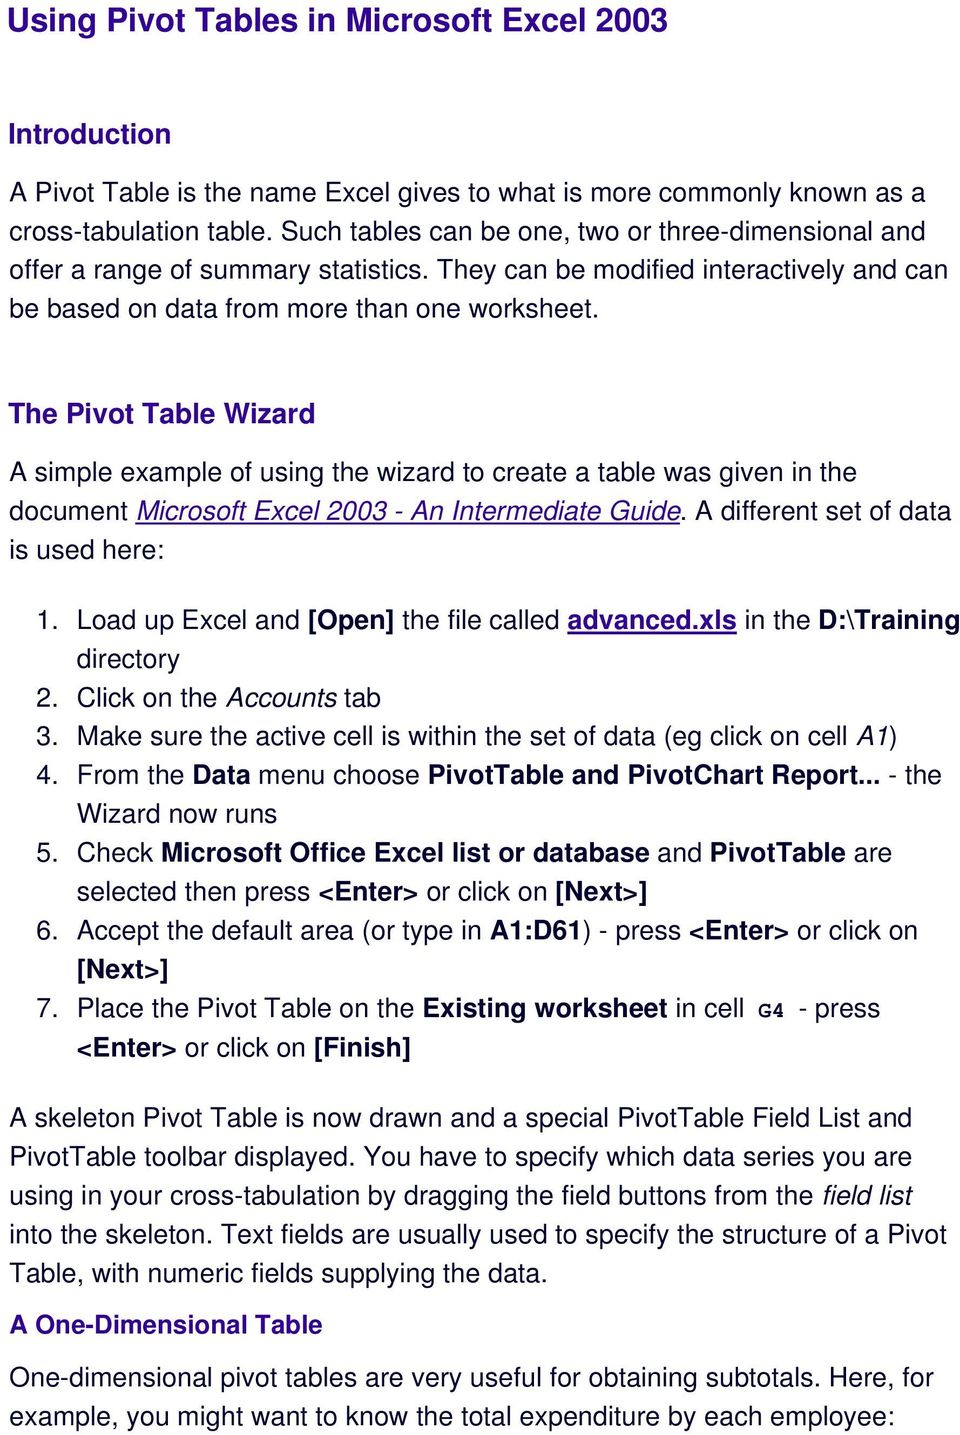 The Pivot Table Wizard A simple example of using the wizard to create a table was given in the document Microsoft Excel 2003 - An Intermediate Guide. A different set of data is used here: 1.